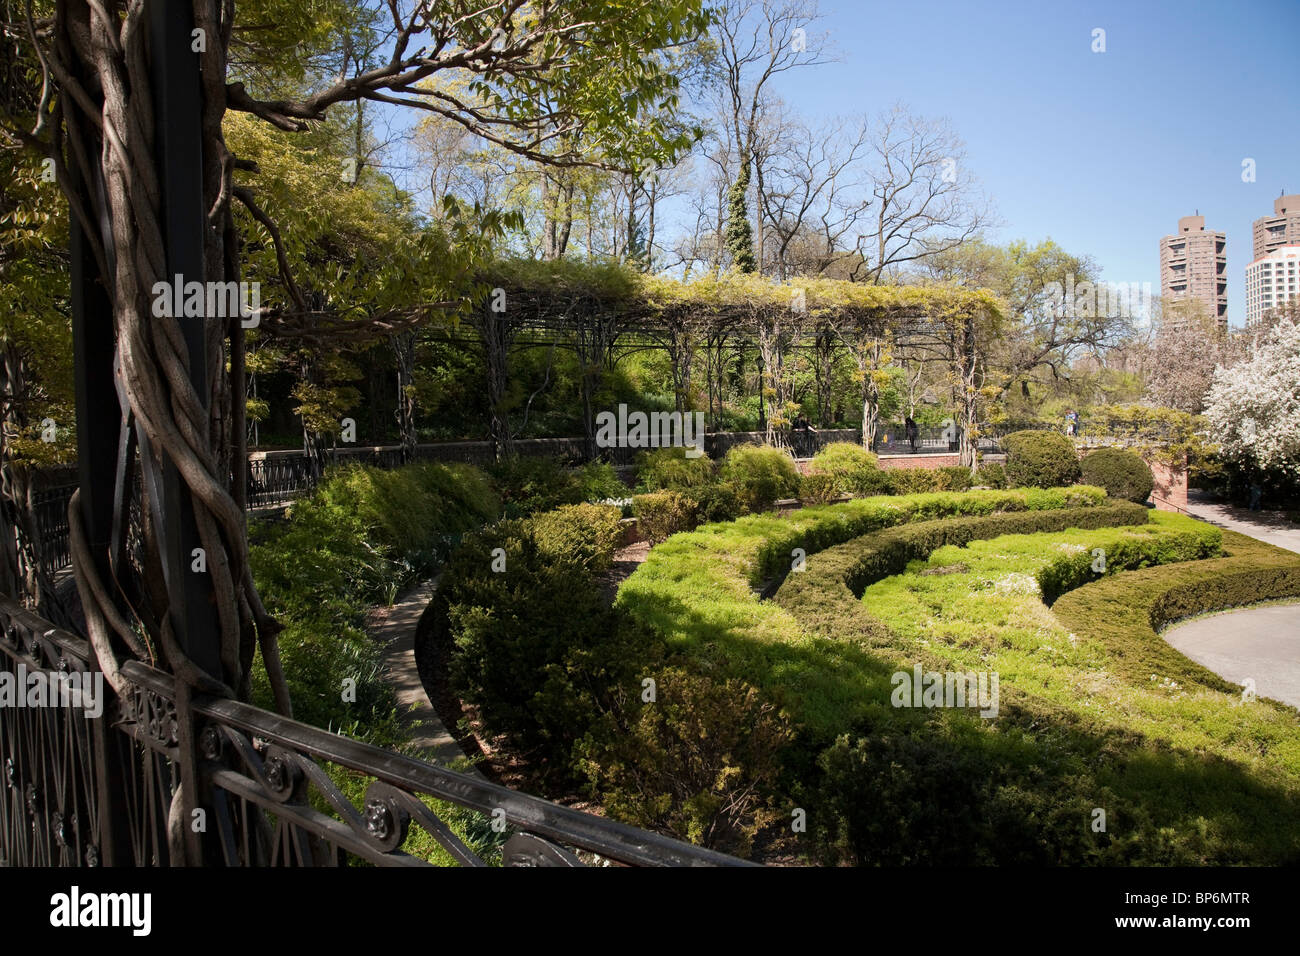 The Conservatory Garden Central Park Nyc Stock Photo